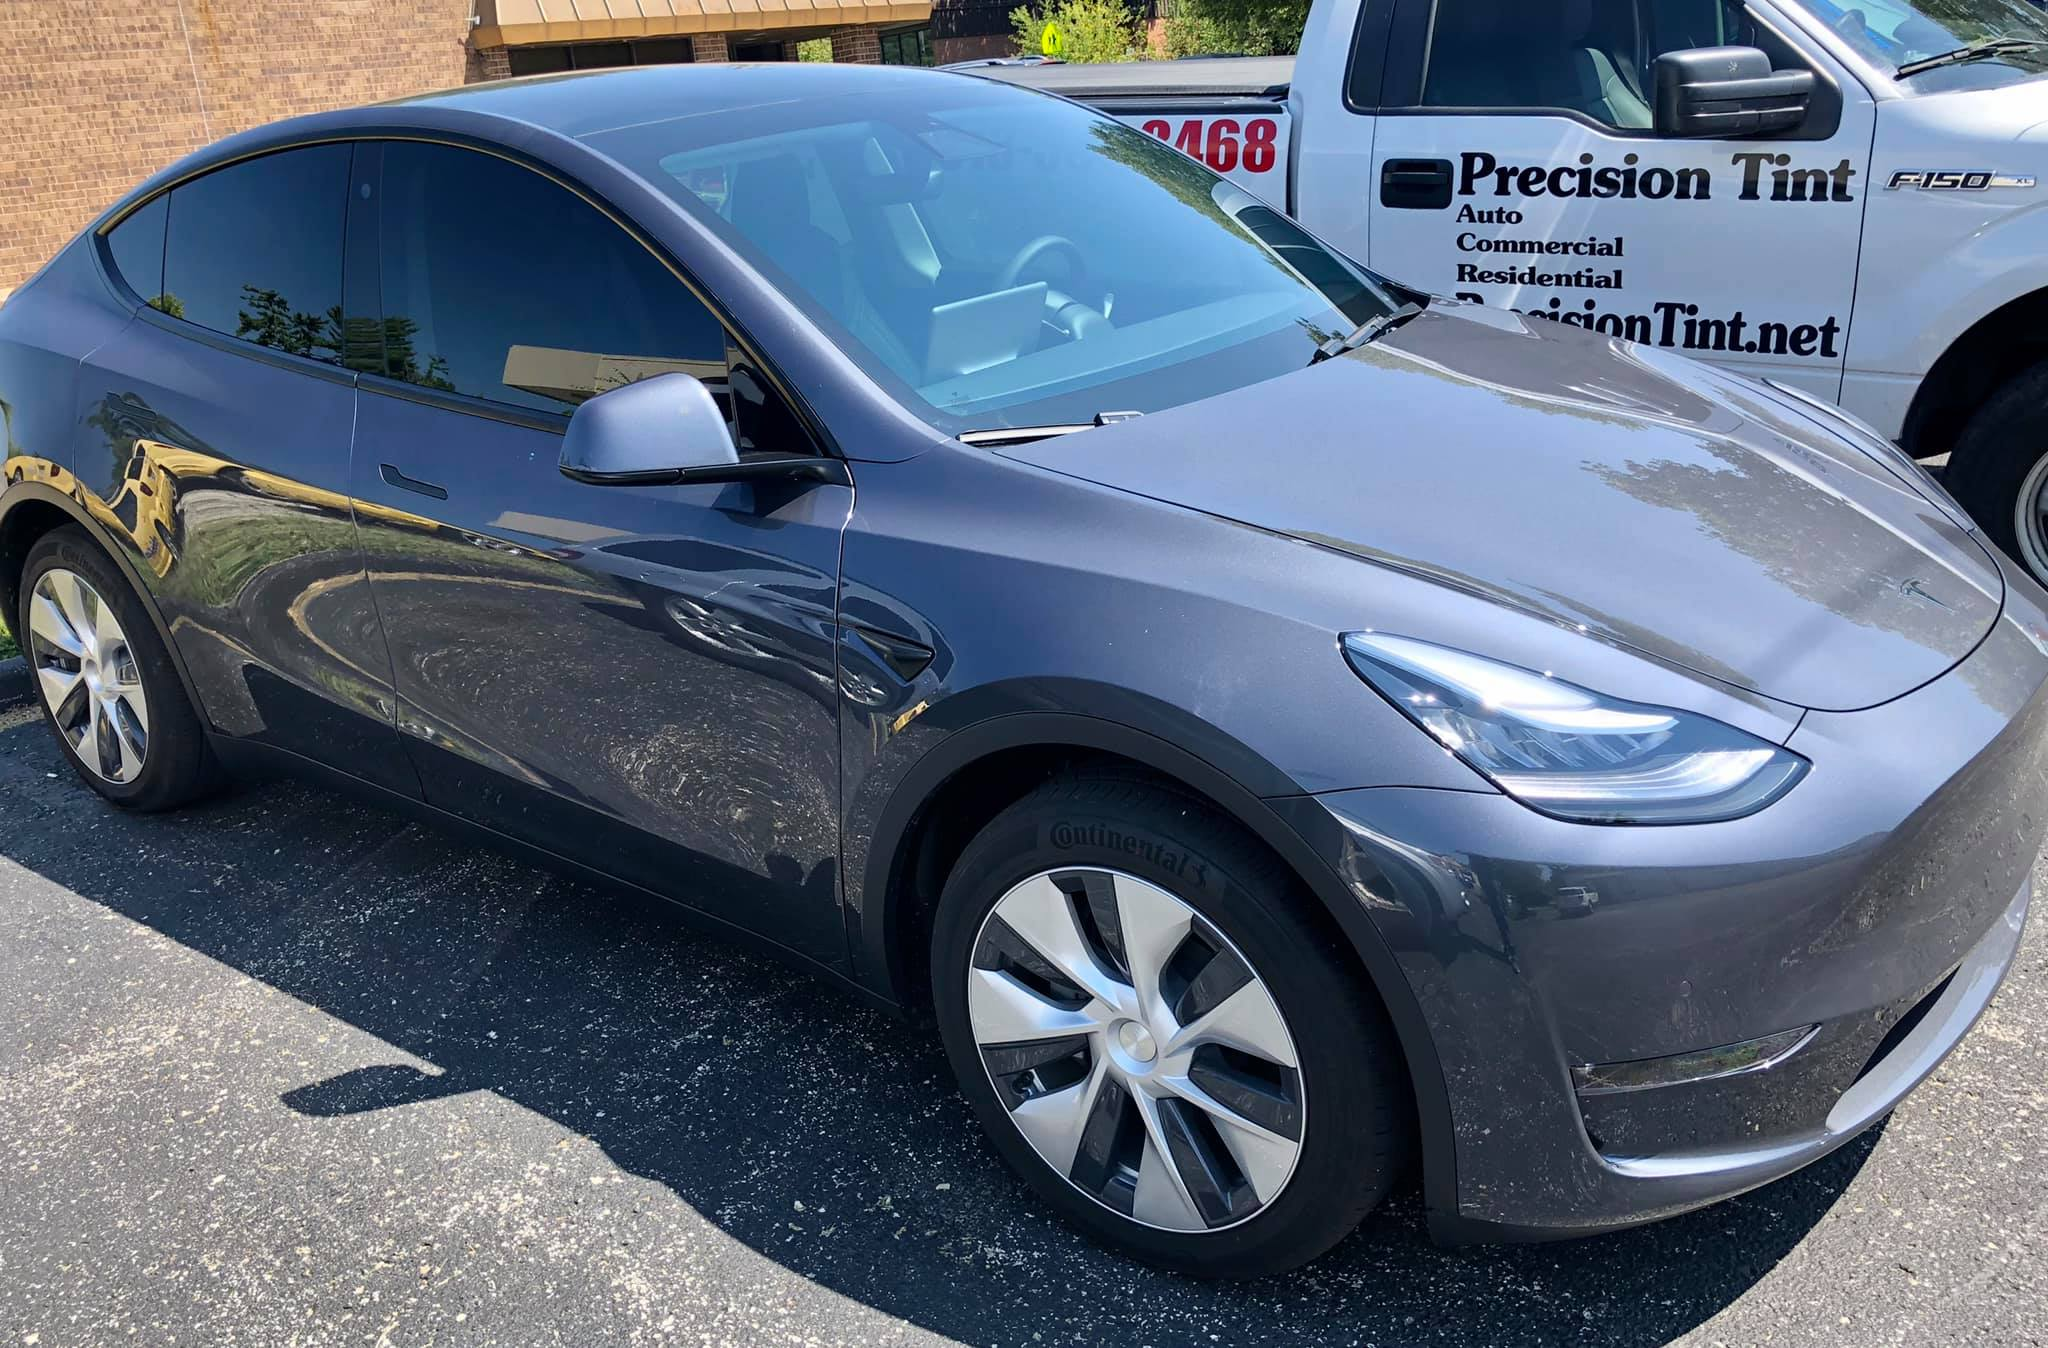 precision tint vehicle window tinting kansas city tesla model y